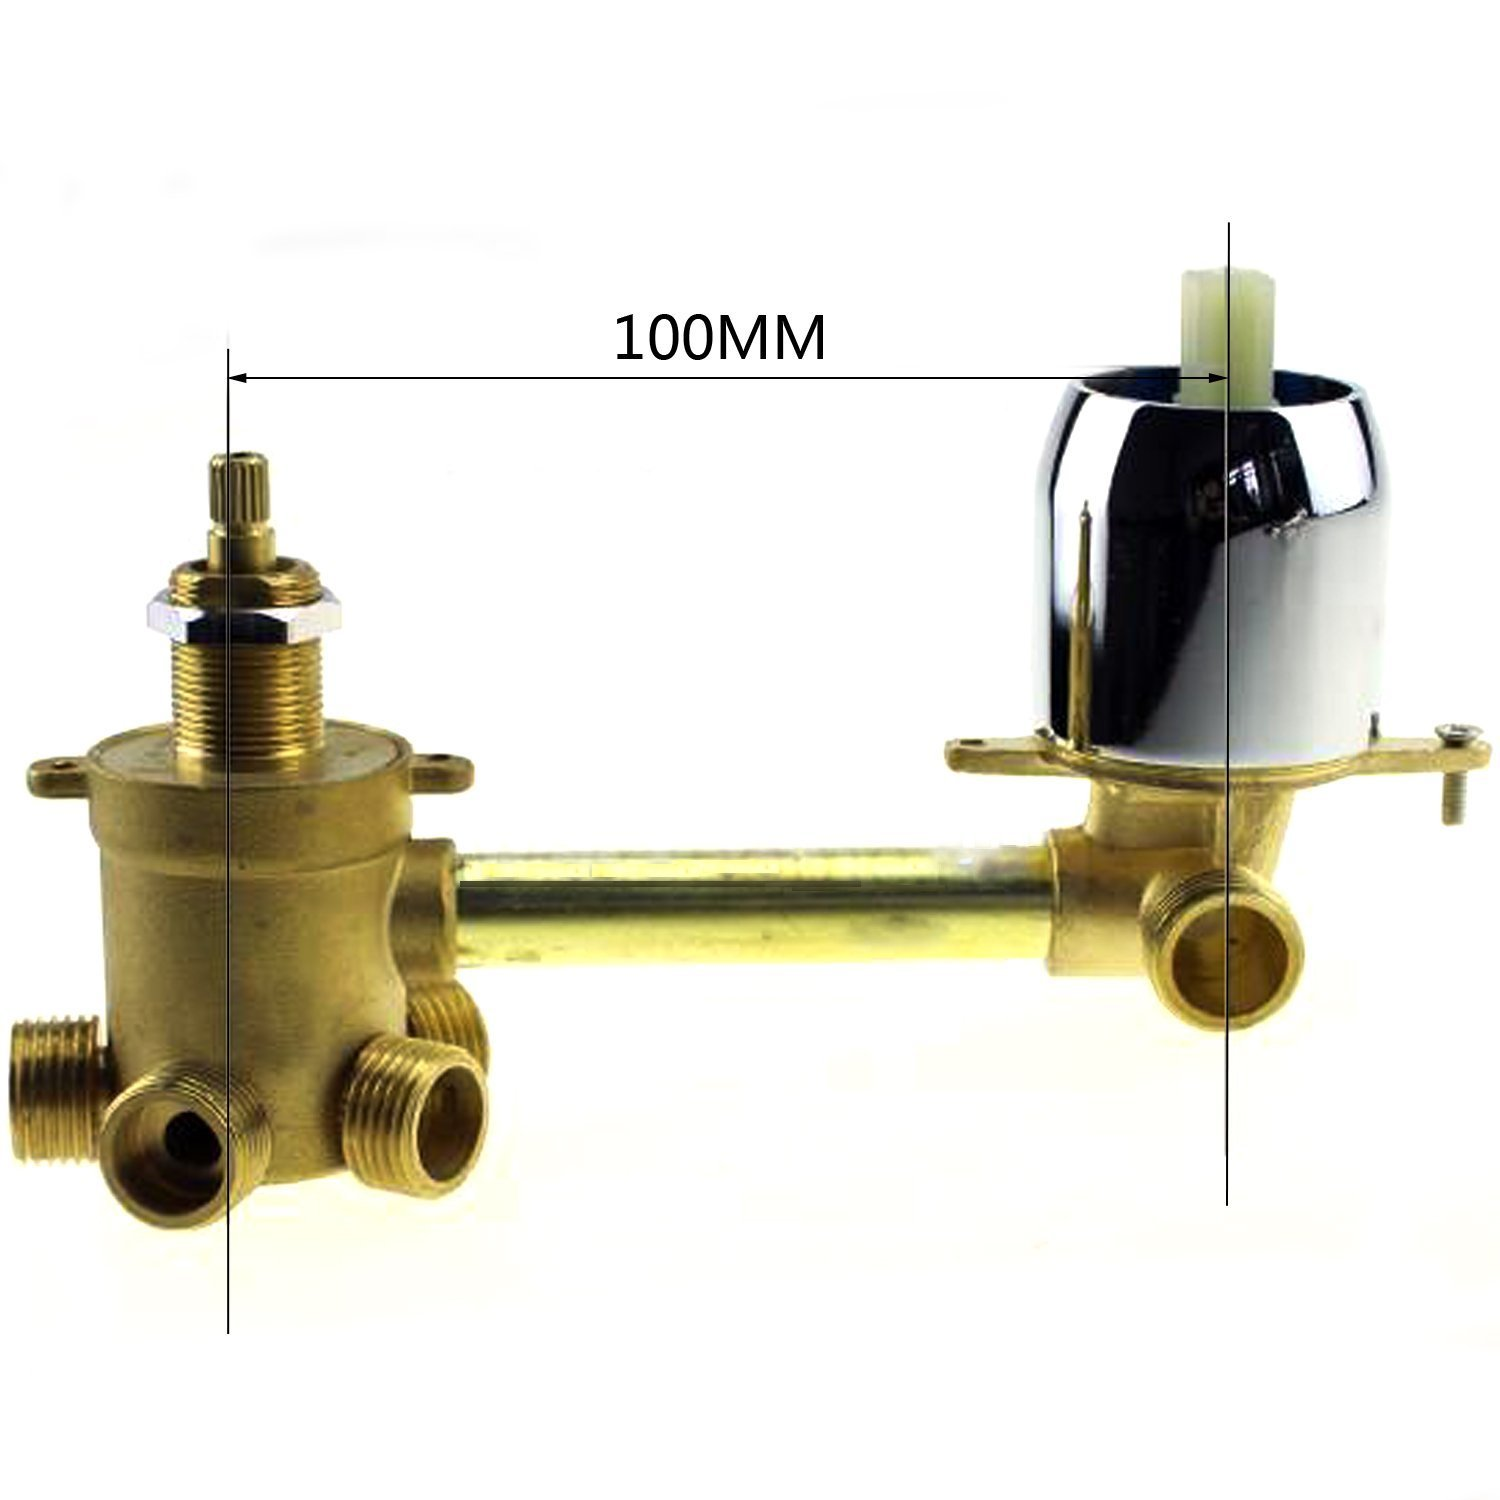 5 way water outlet bathroom shower mixer faucet, shower mixing valve